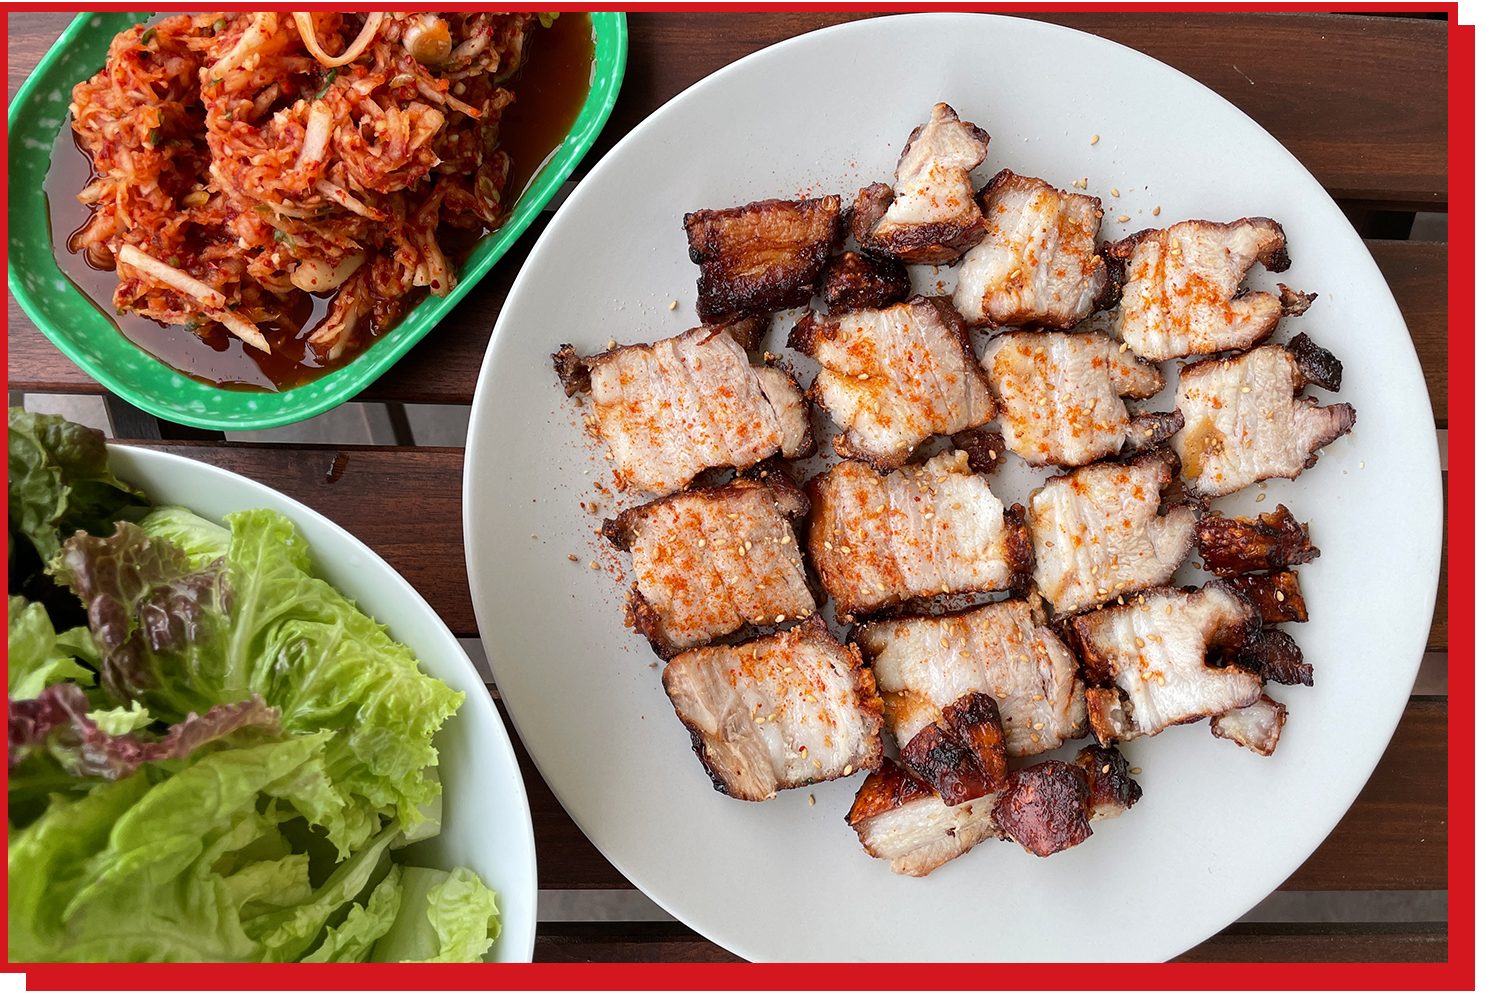 Pork belly sliced and on a plate with red seasoning on top. Lettuce and kimchi are on separate plates nearby.